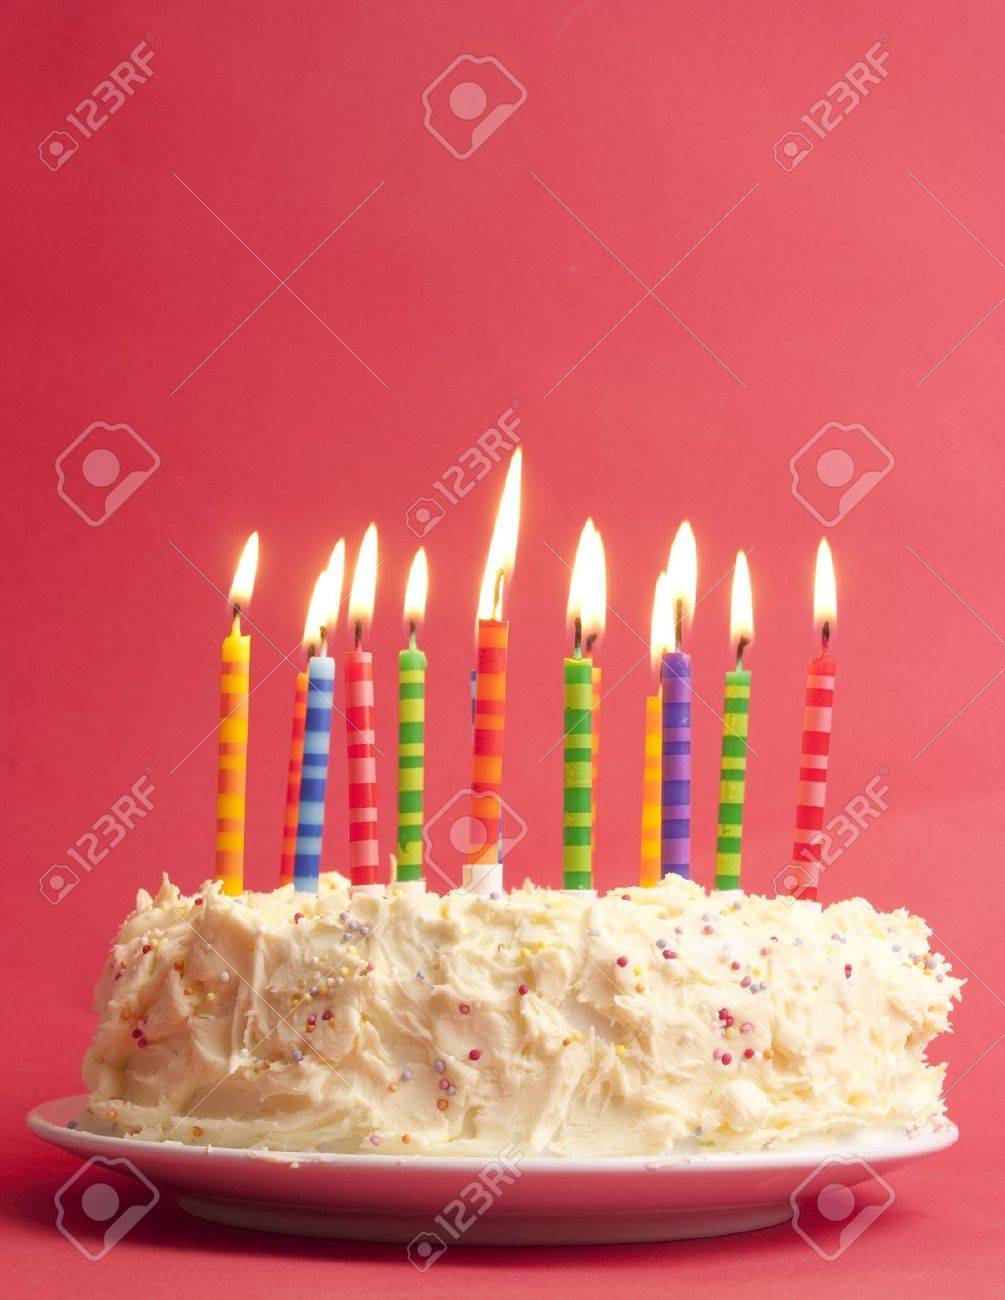 Birthday Cake With Lots Of Cute Striped Candles Shot On A Red